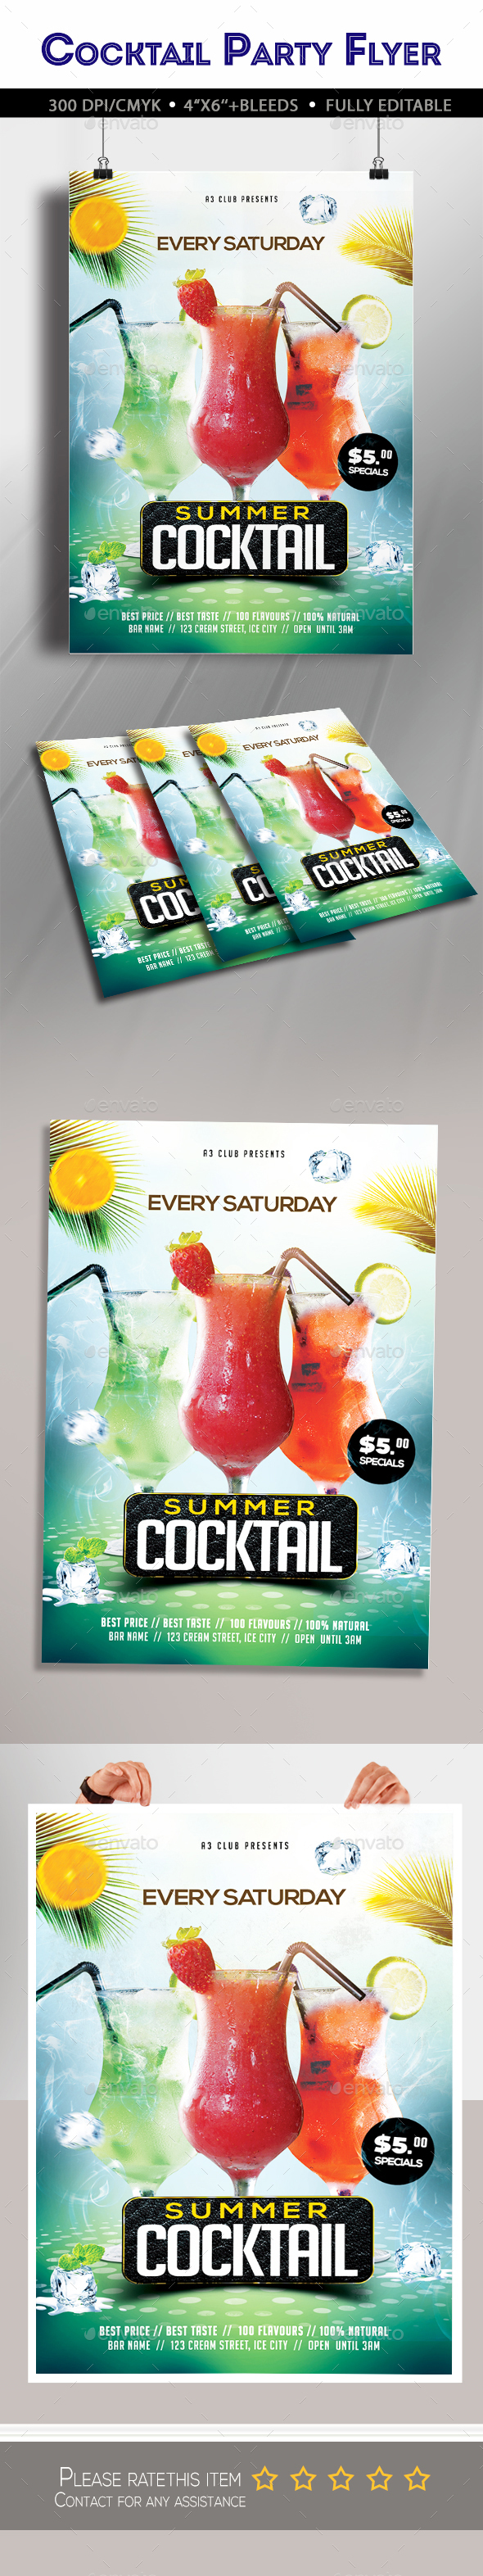 Summer Cocktail Party Flyer - Clubs & Parties Events